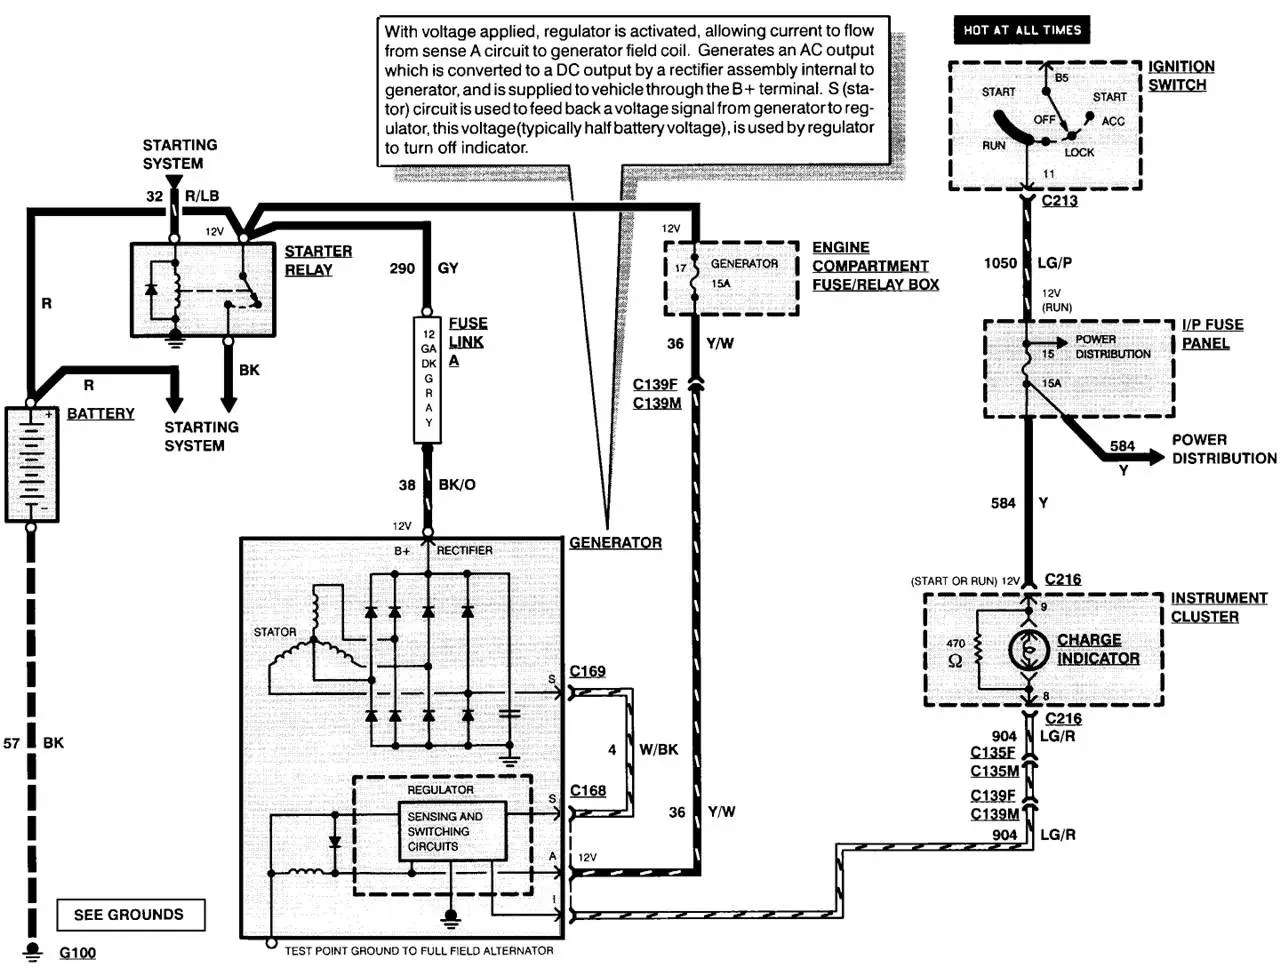 hight resolution of ford f150 alternator wiring diagram dodge alternator wiring what color goes where